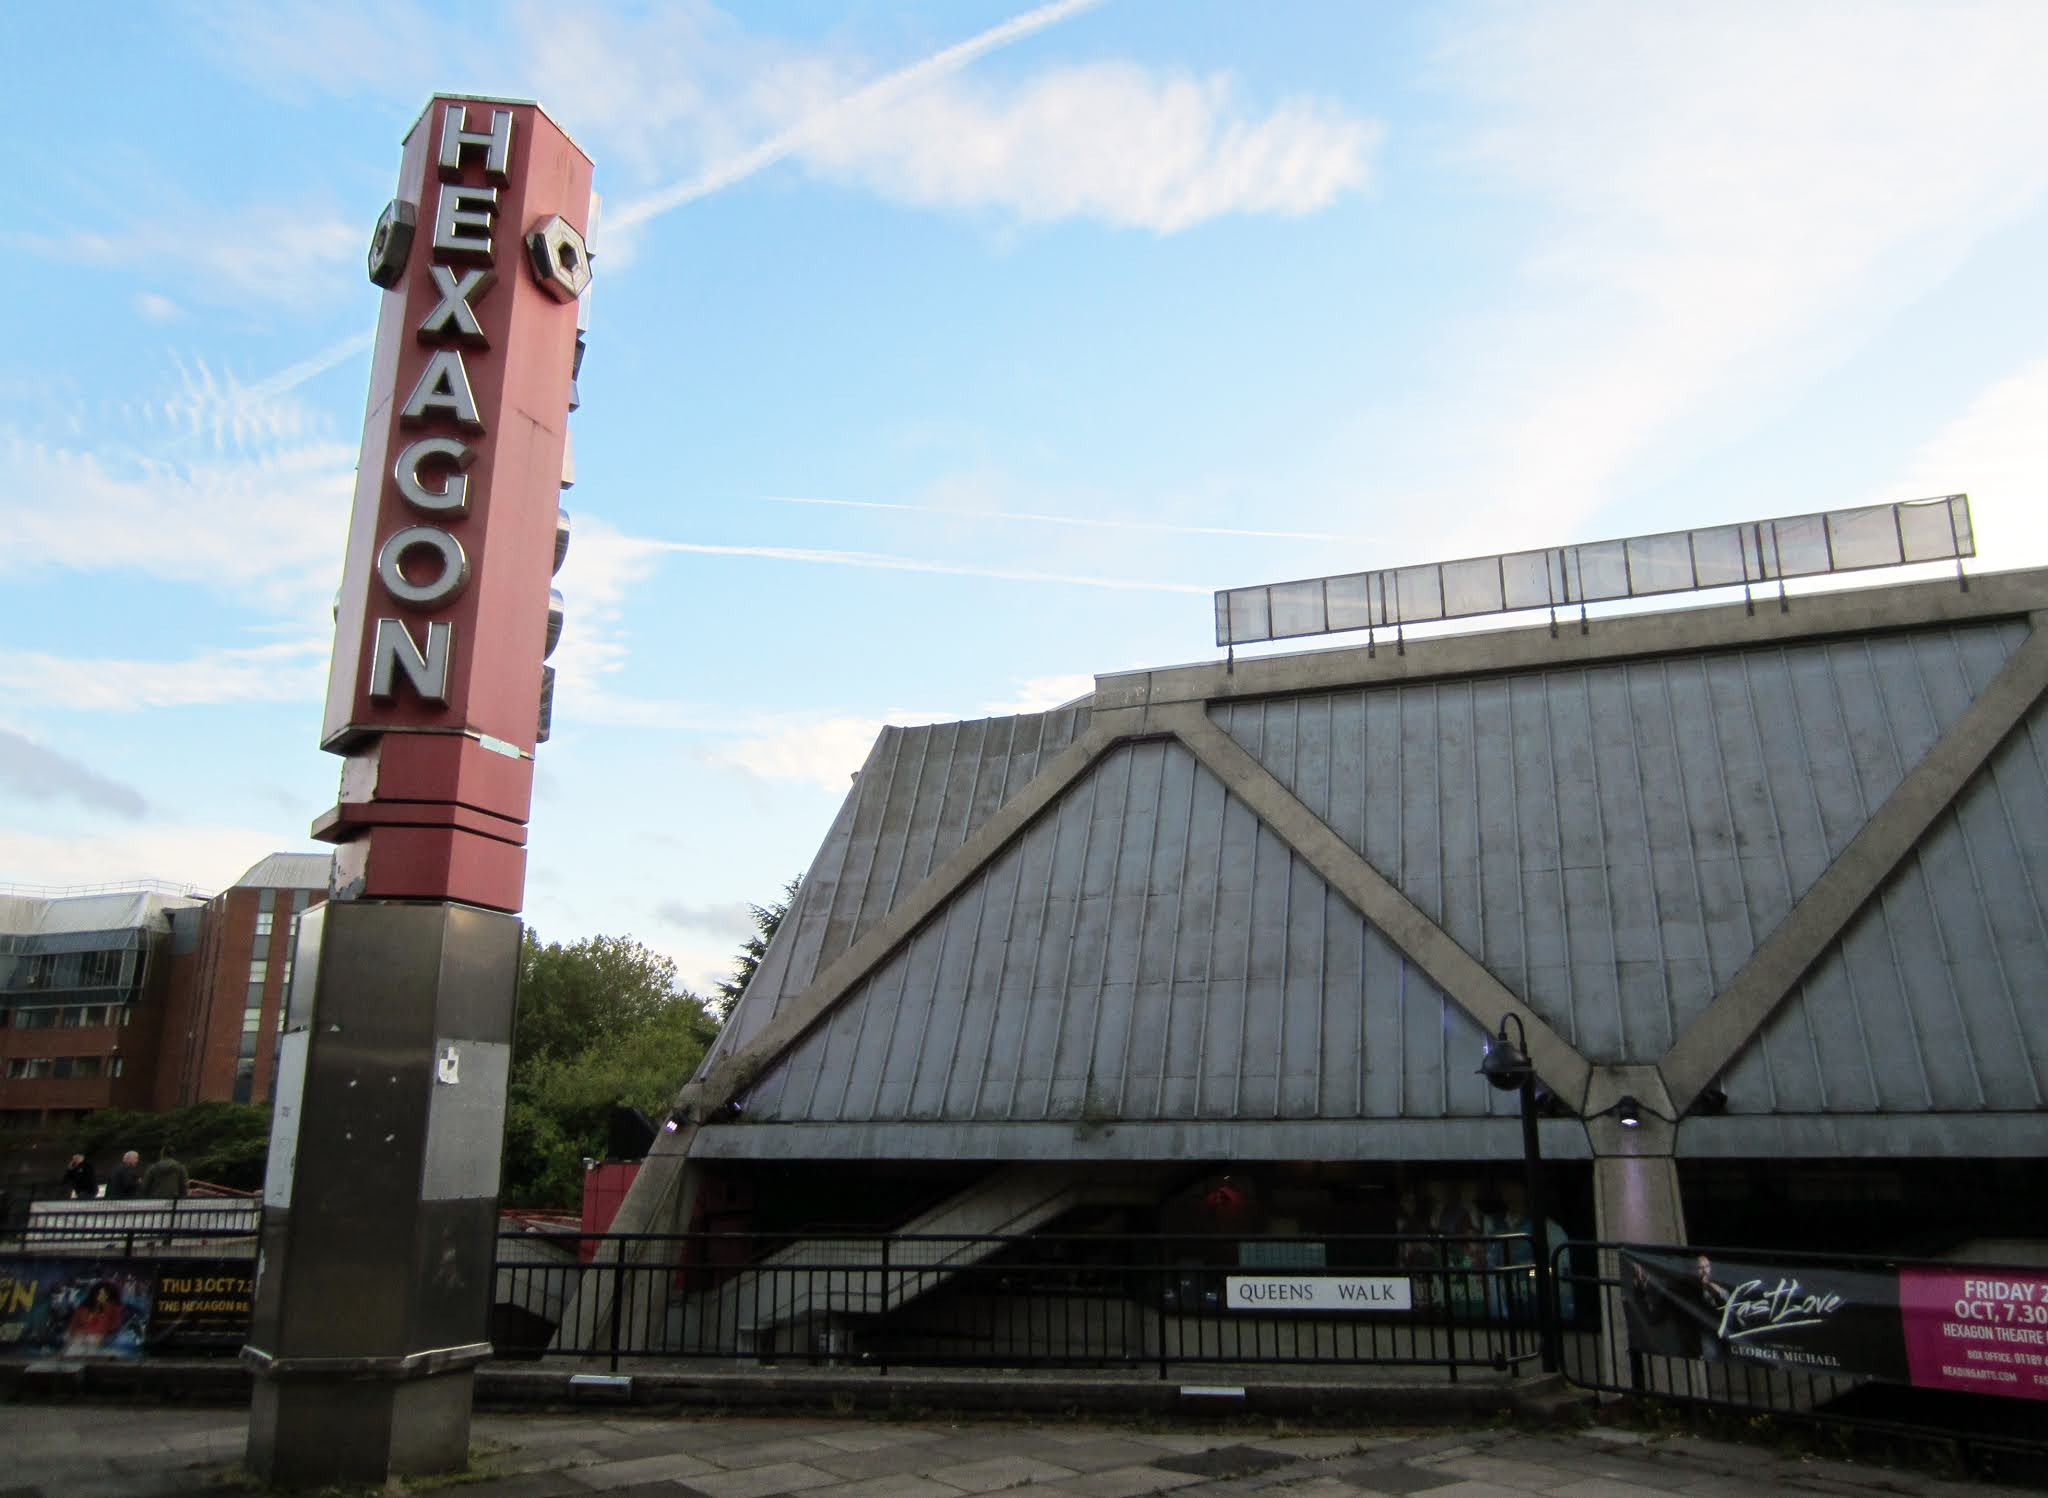 Exterior of The Hexagon theatre in Reading